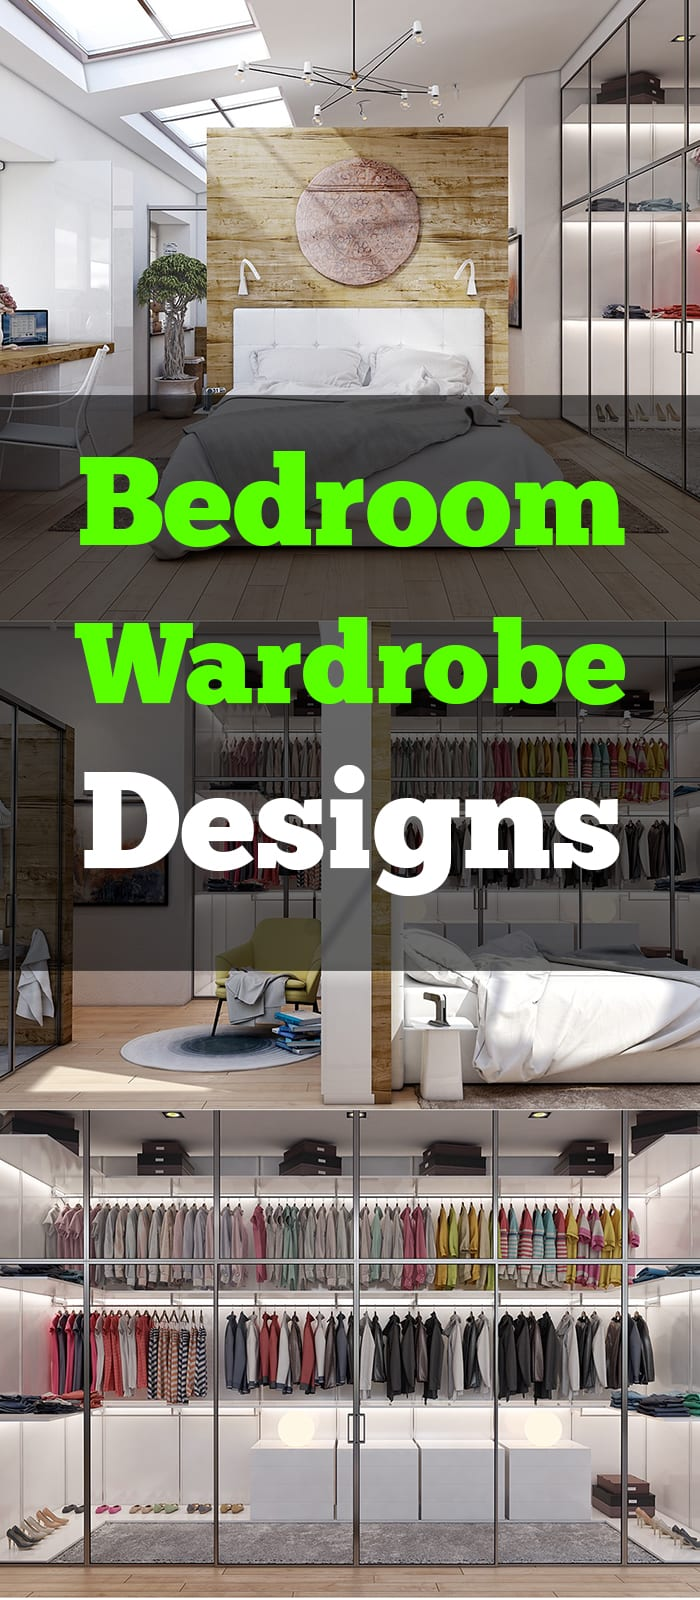 Beautiful Bedroom Wardrobe Design Ideas.